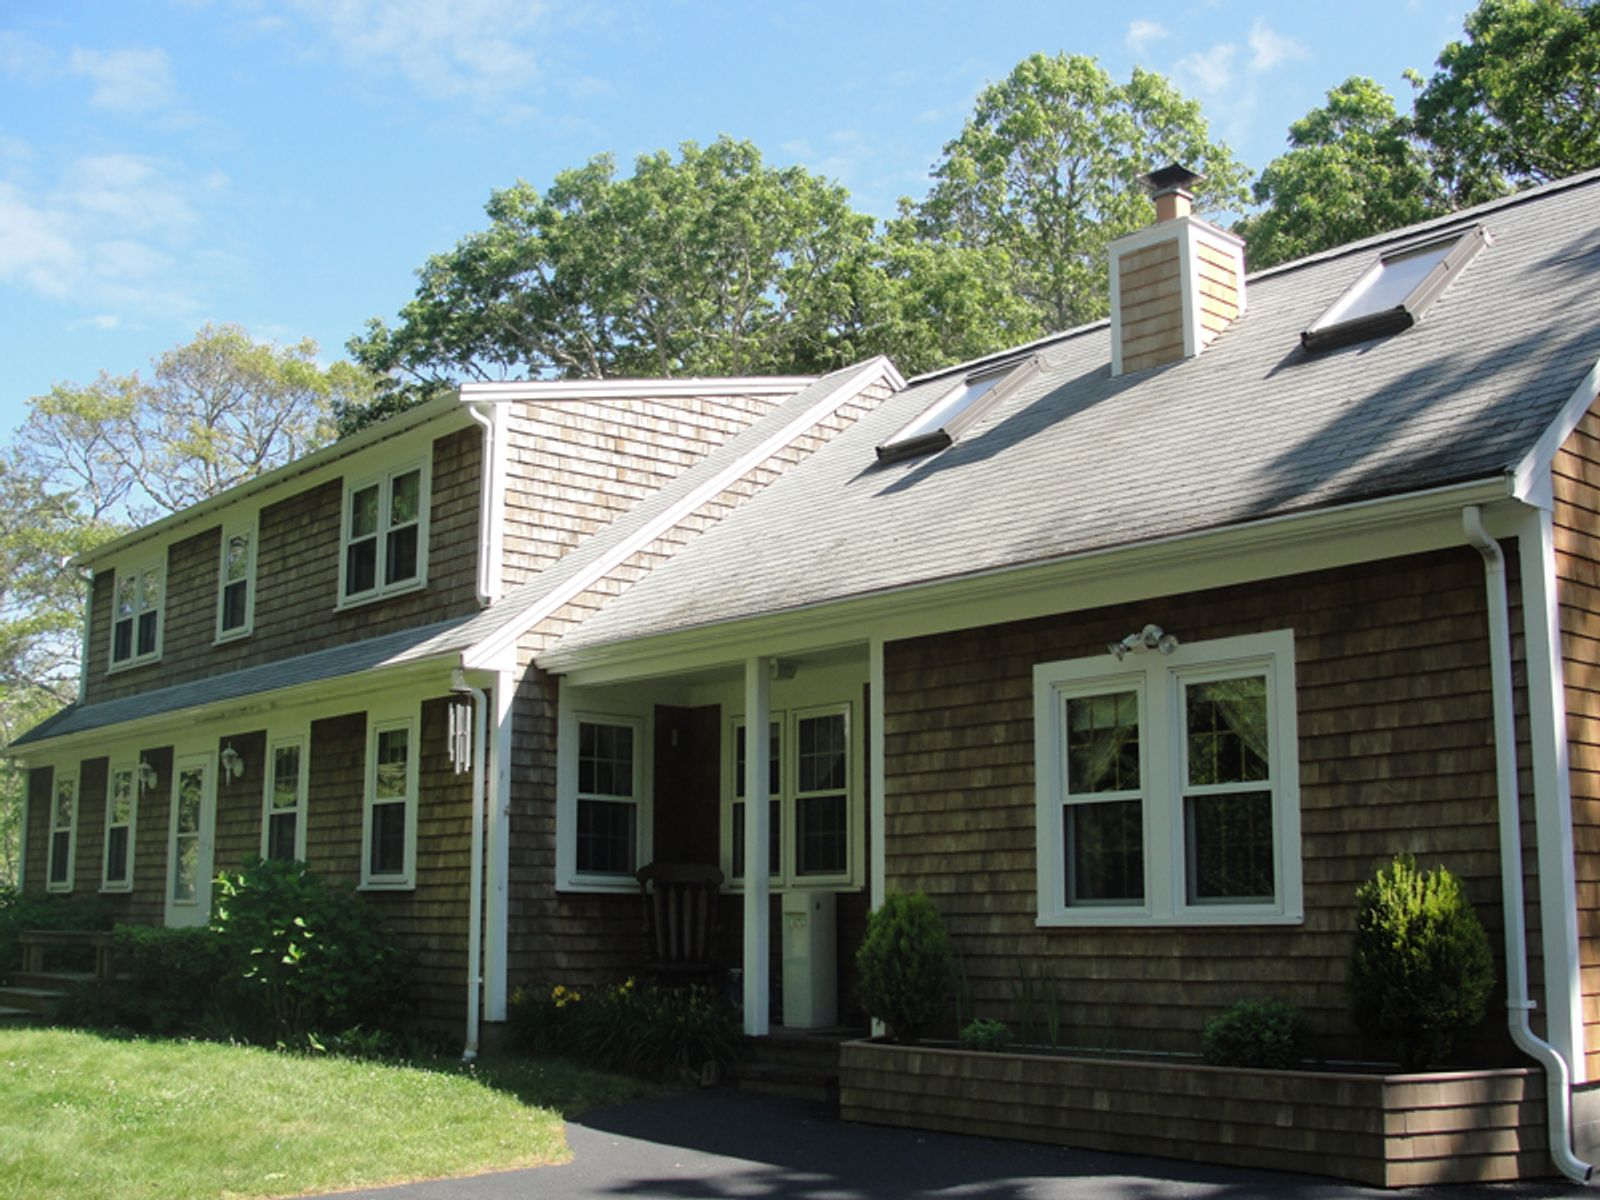 Old Silver Beach, West Falmouth MA Single Family Home - Cape Cod Real Estate